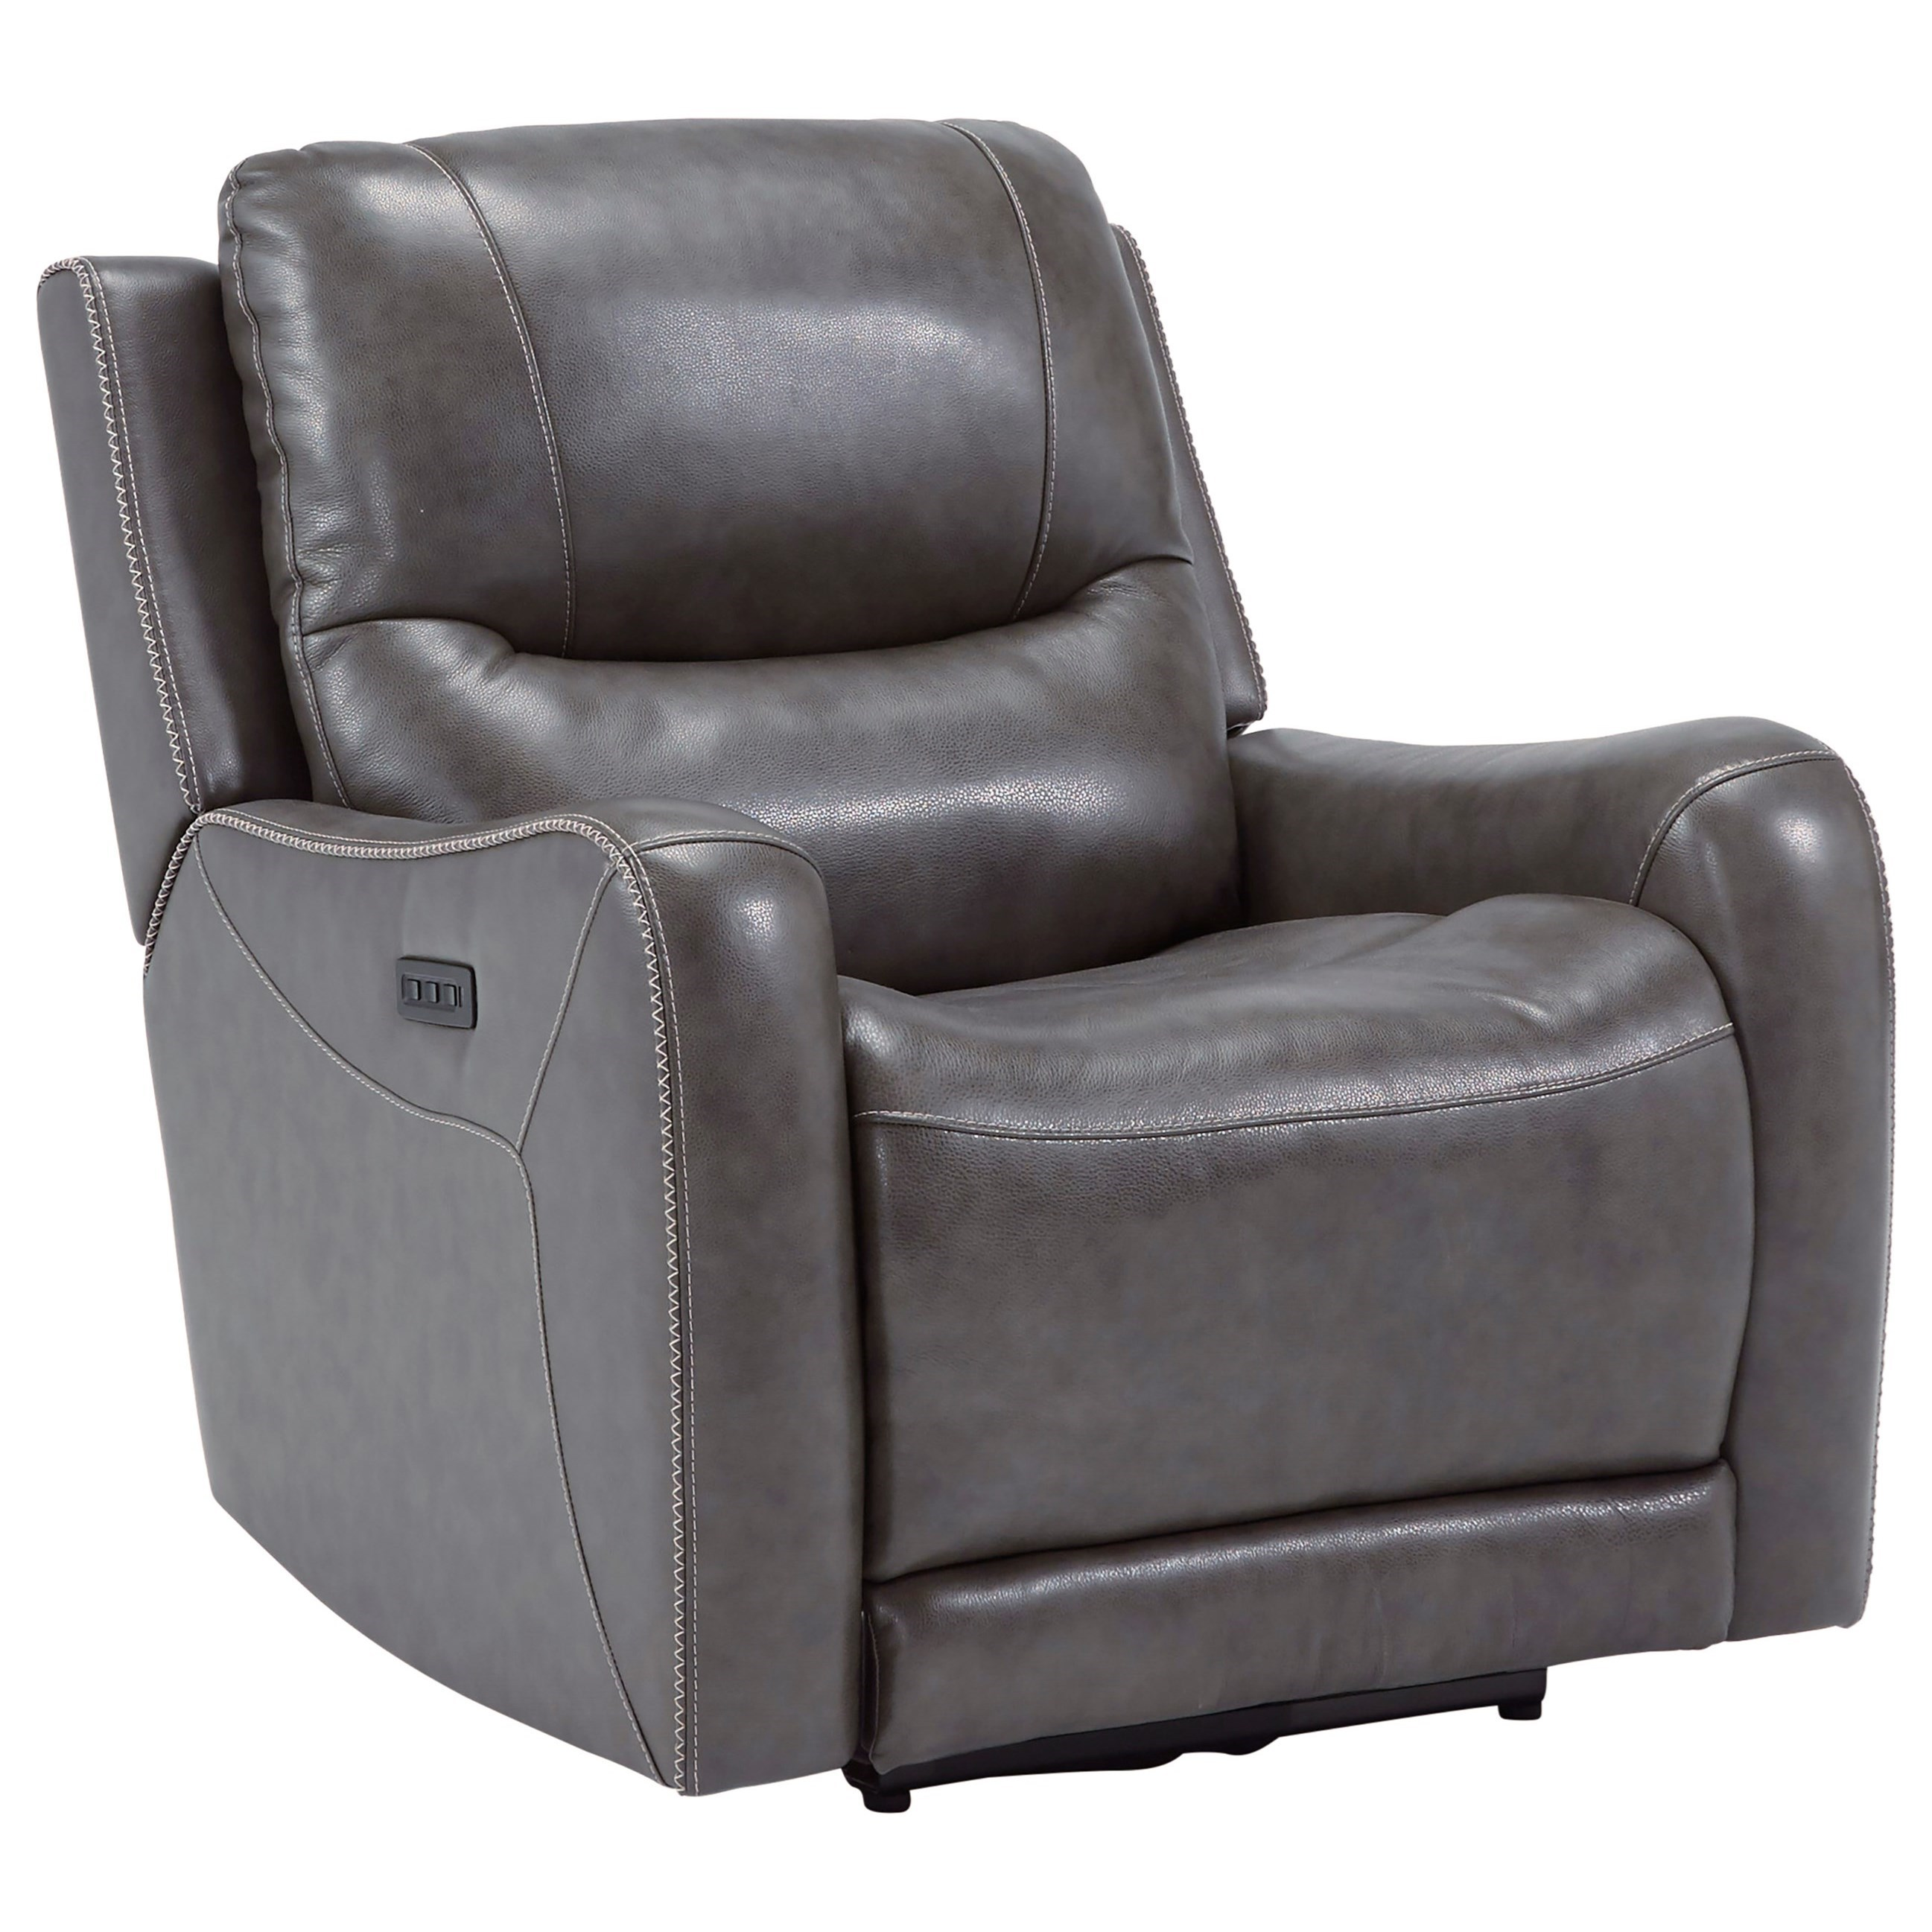 Galahad Zero Wall Recliner w/ Power Headrest by Signature Design by Ashley at Suburban Furniture